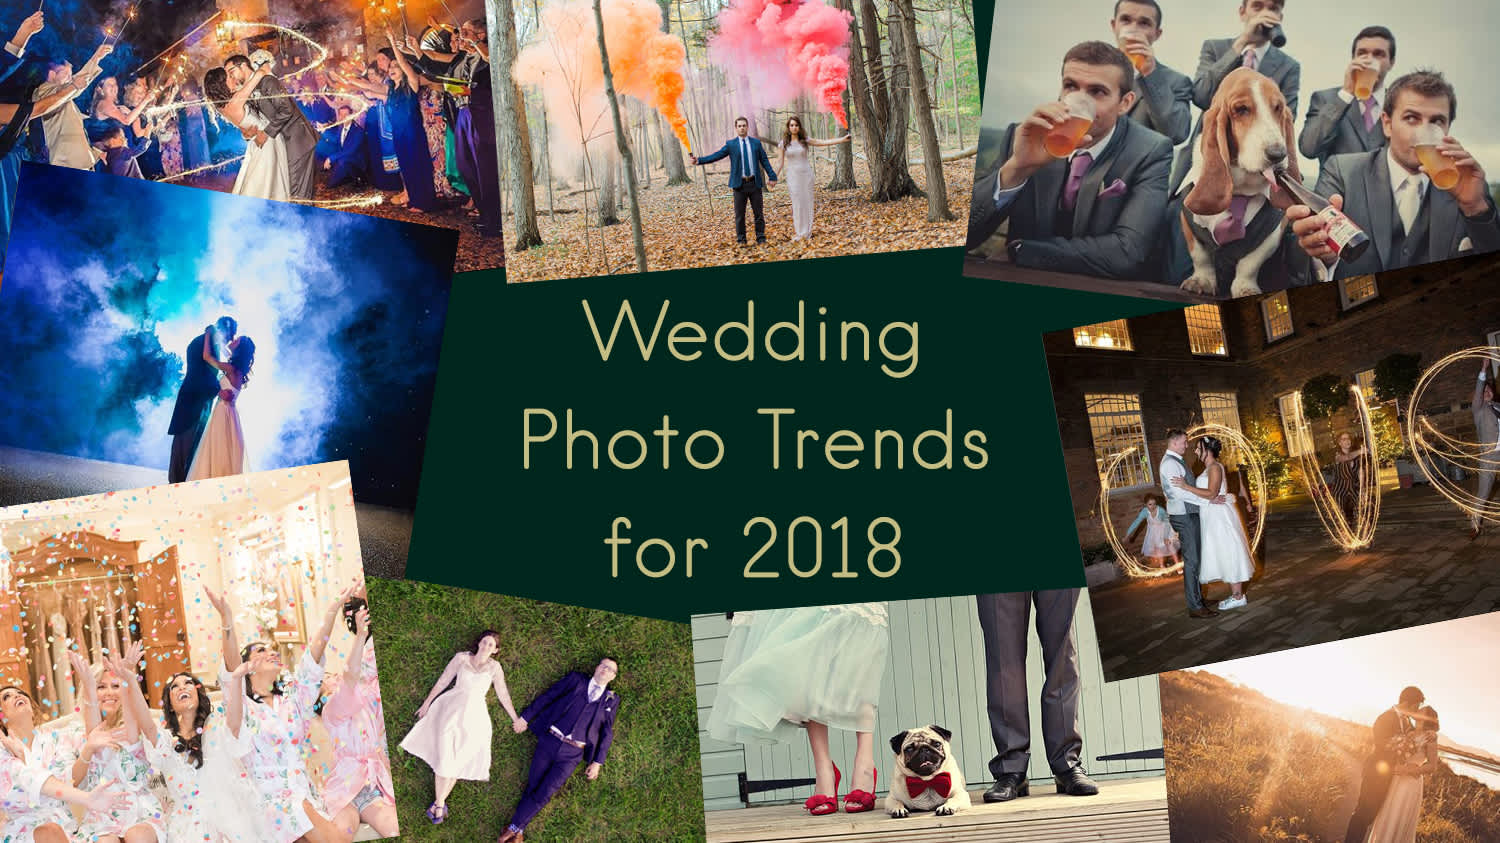 Wedding photo trends for 2018